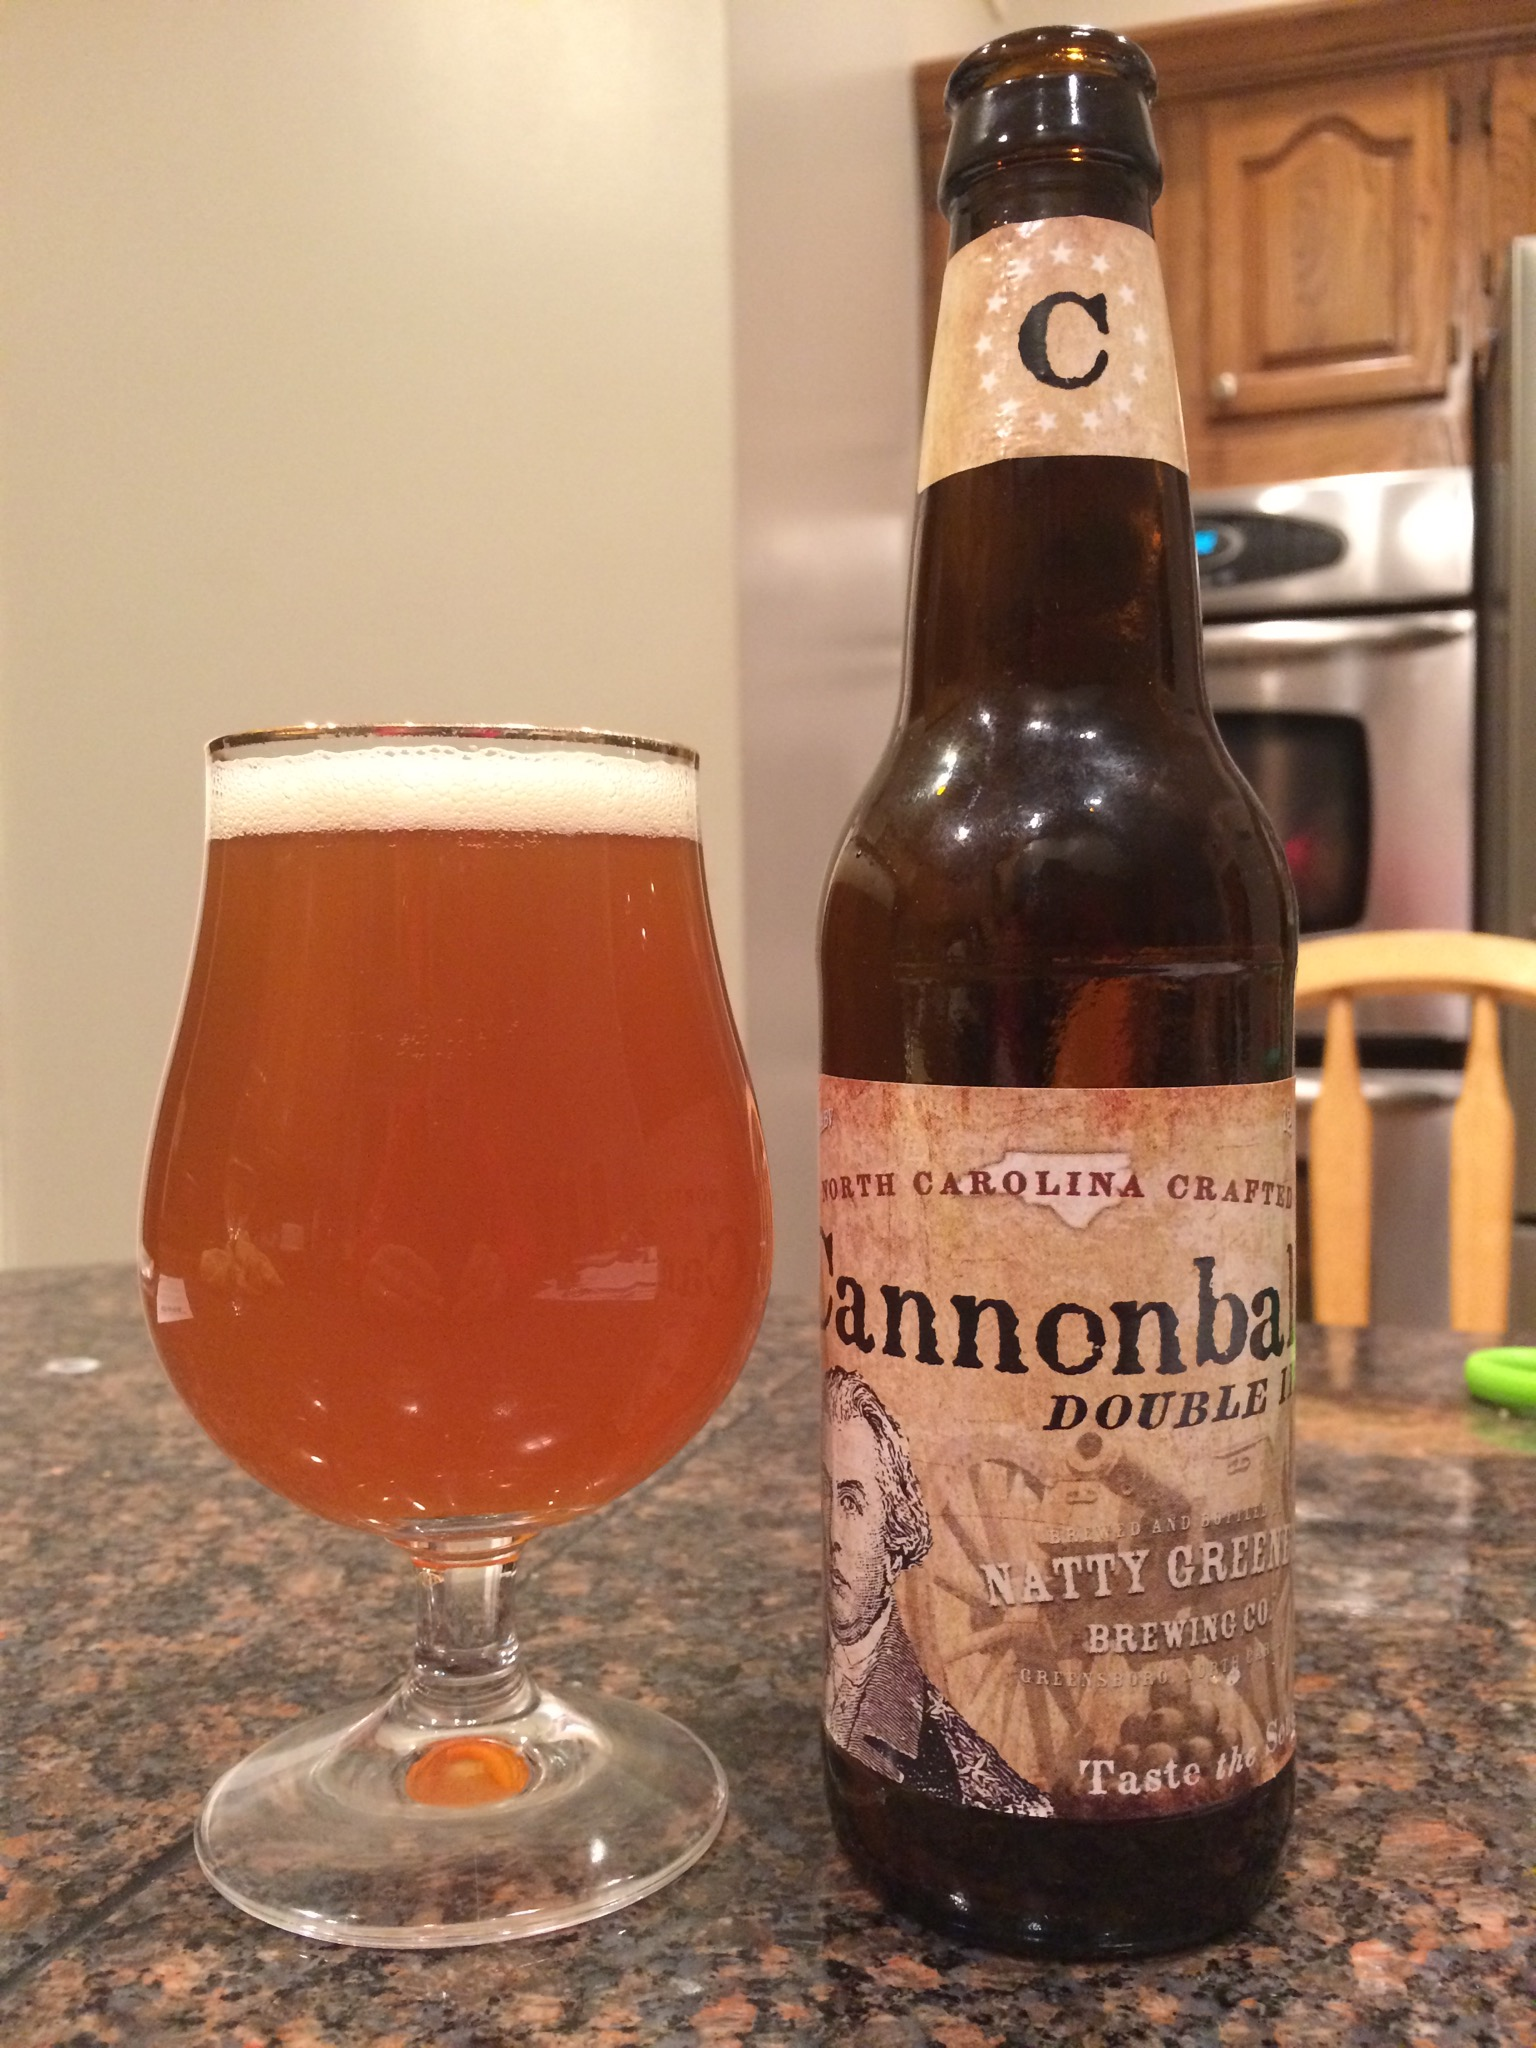 748. Natty Greene's Brewing Co. – Cannonball Double IPA